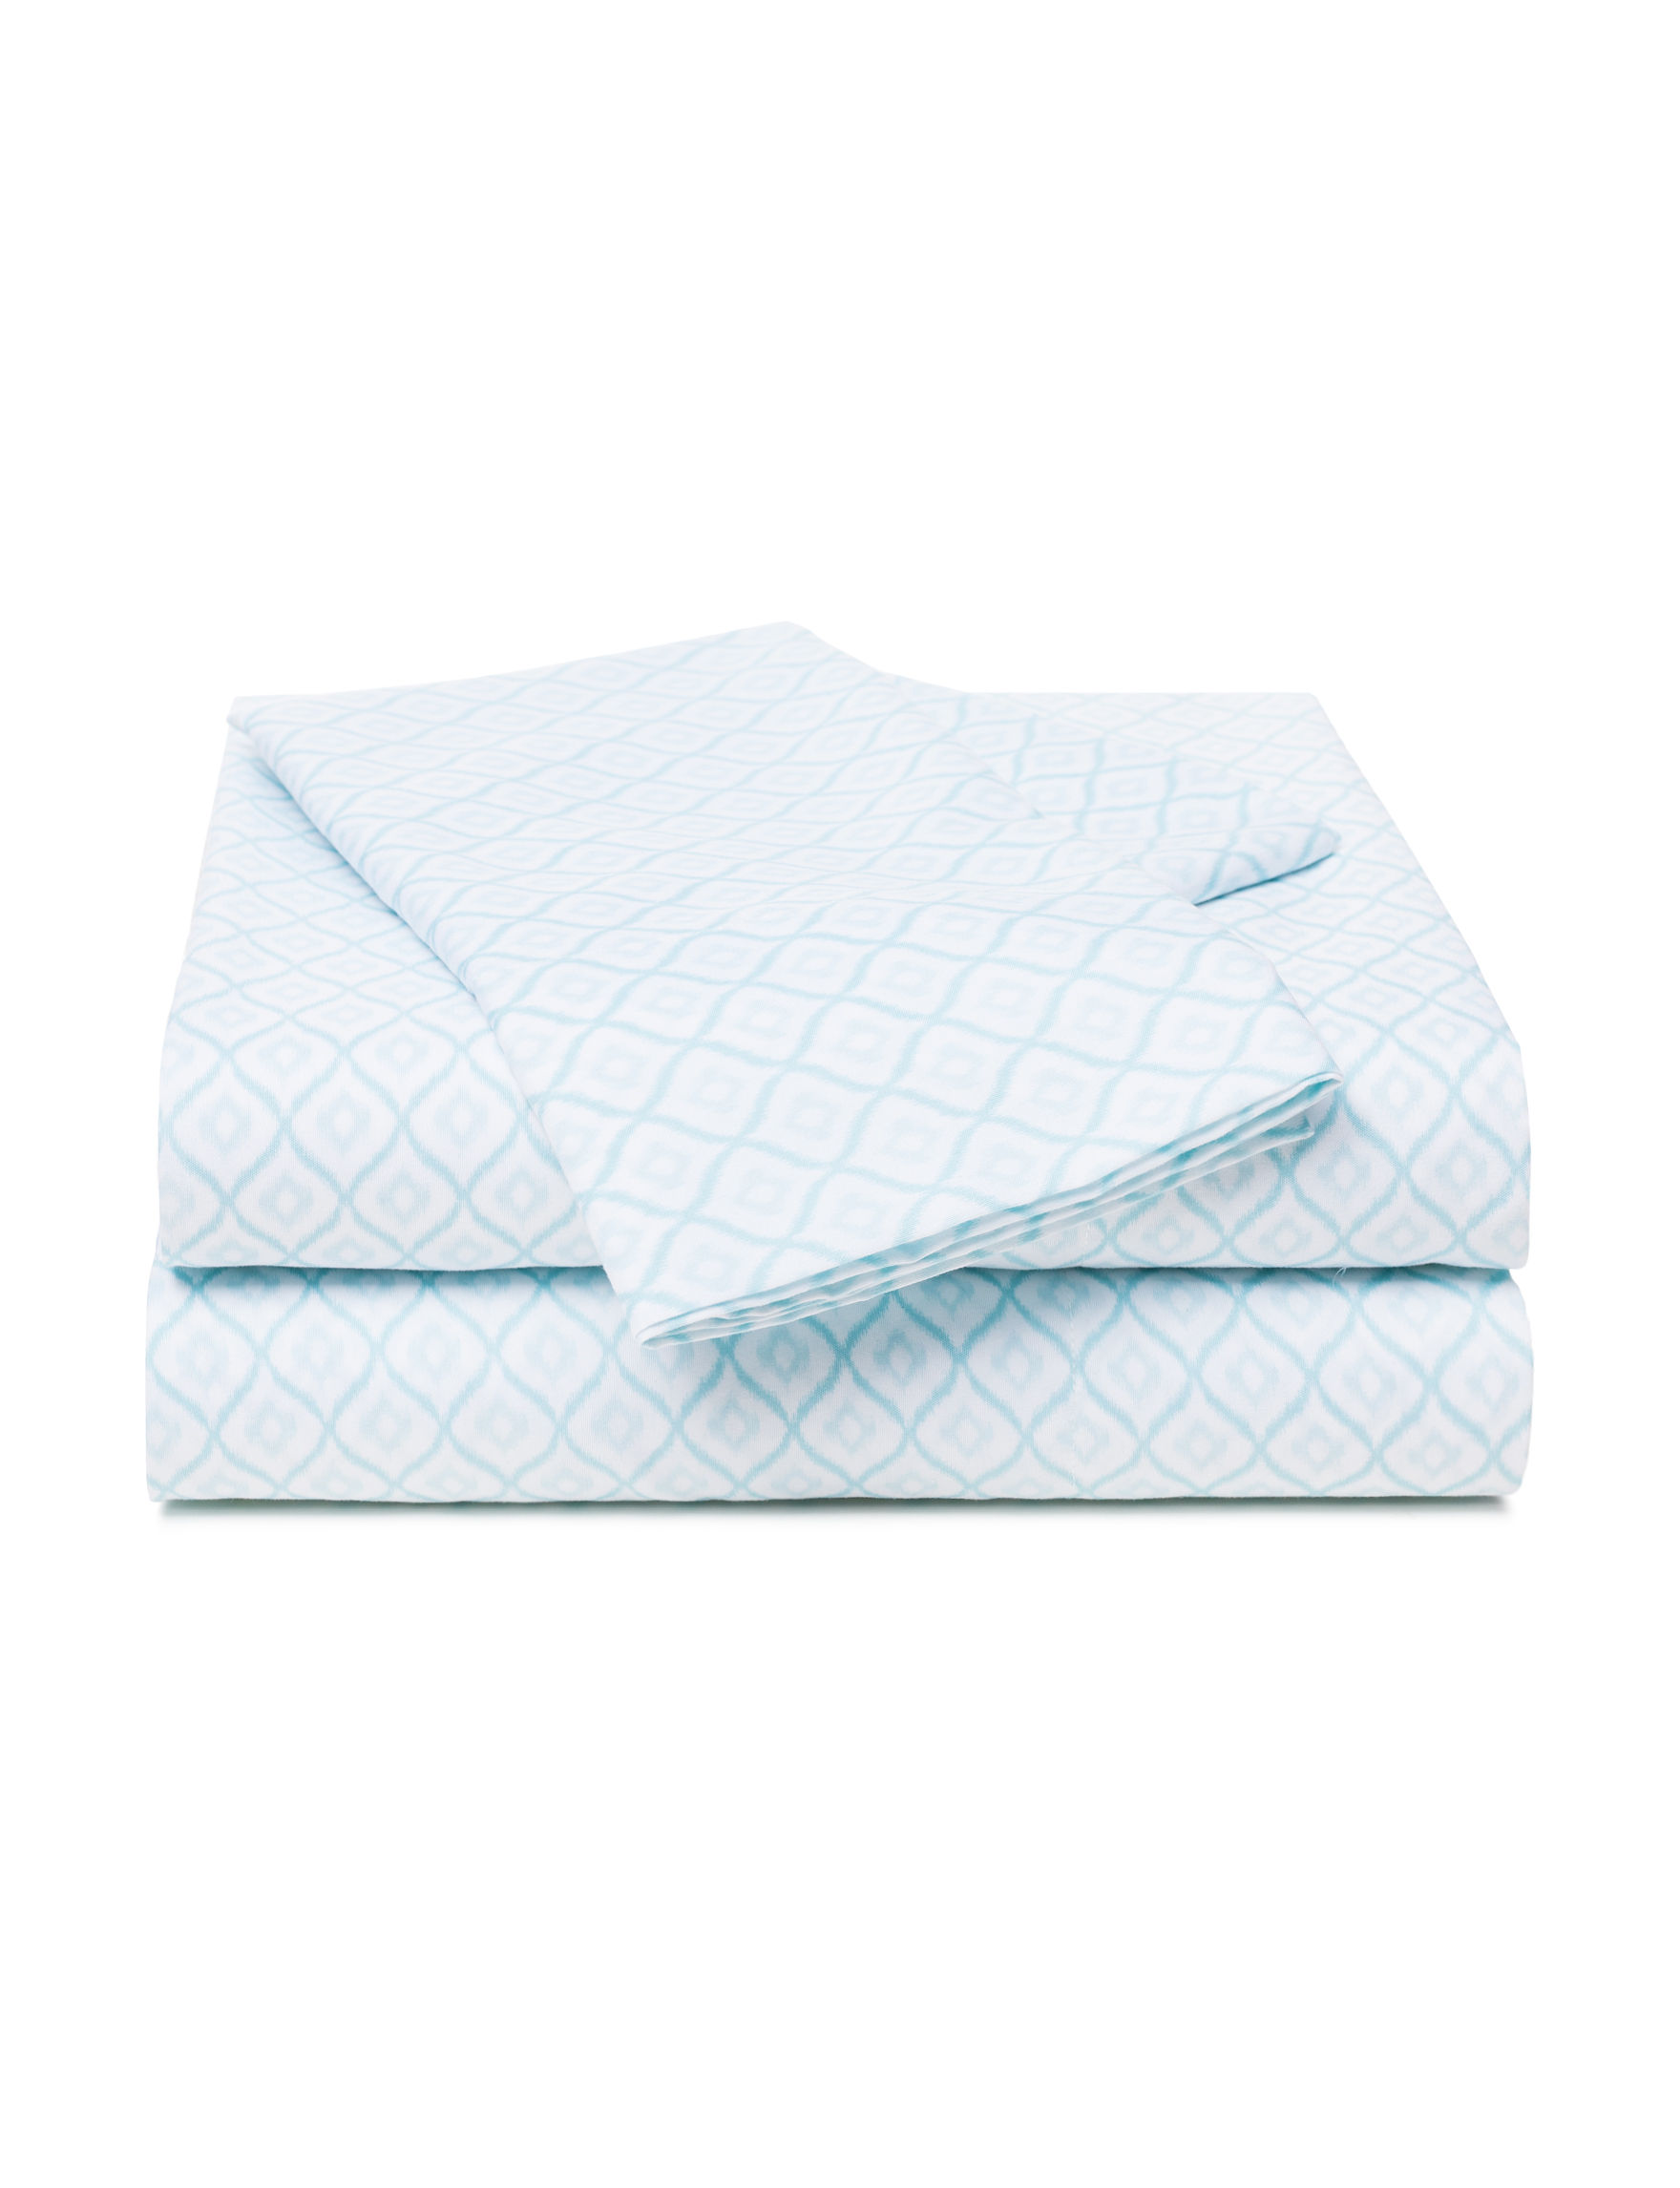 Great Hotels Collection Aqua Sheets & Pillowcases